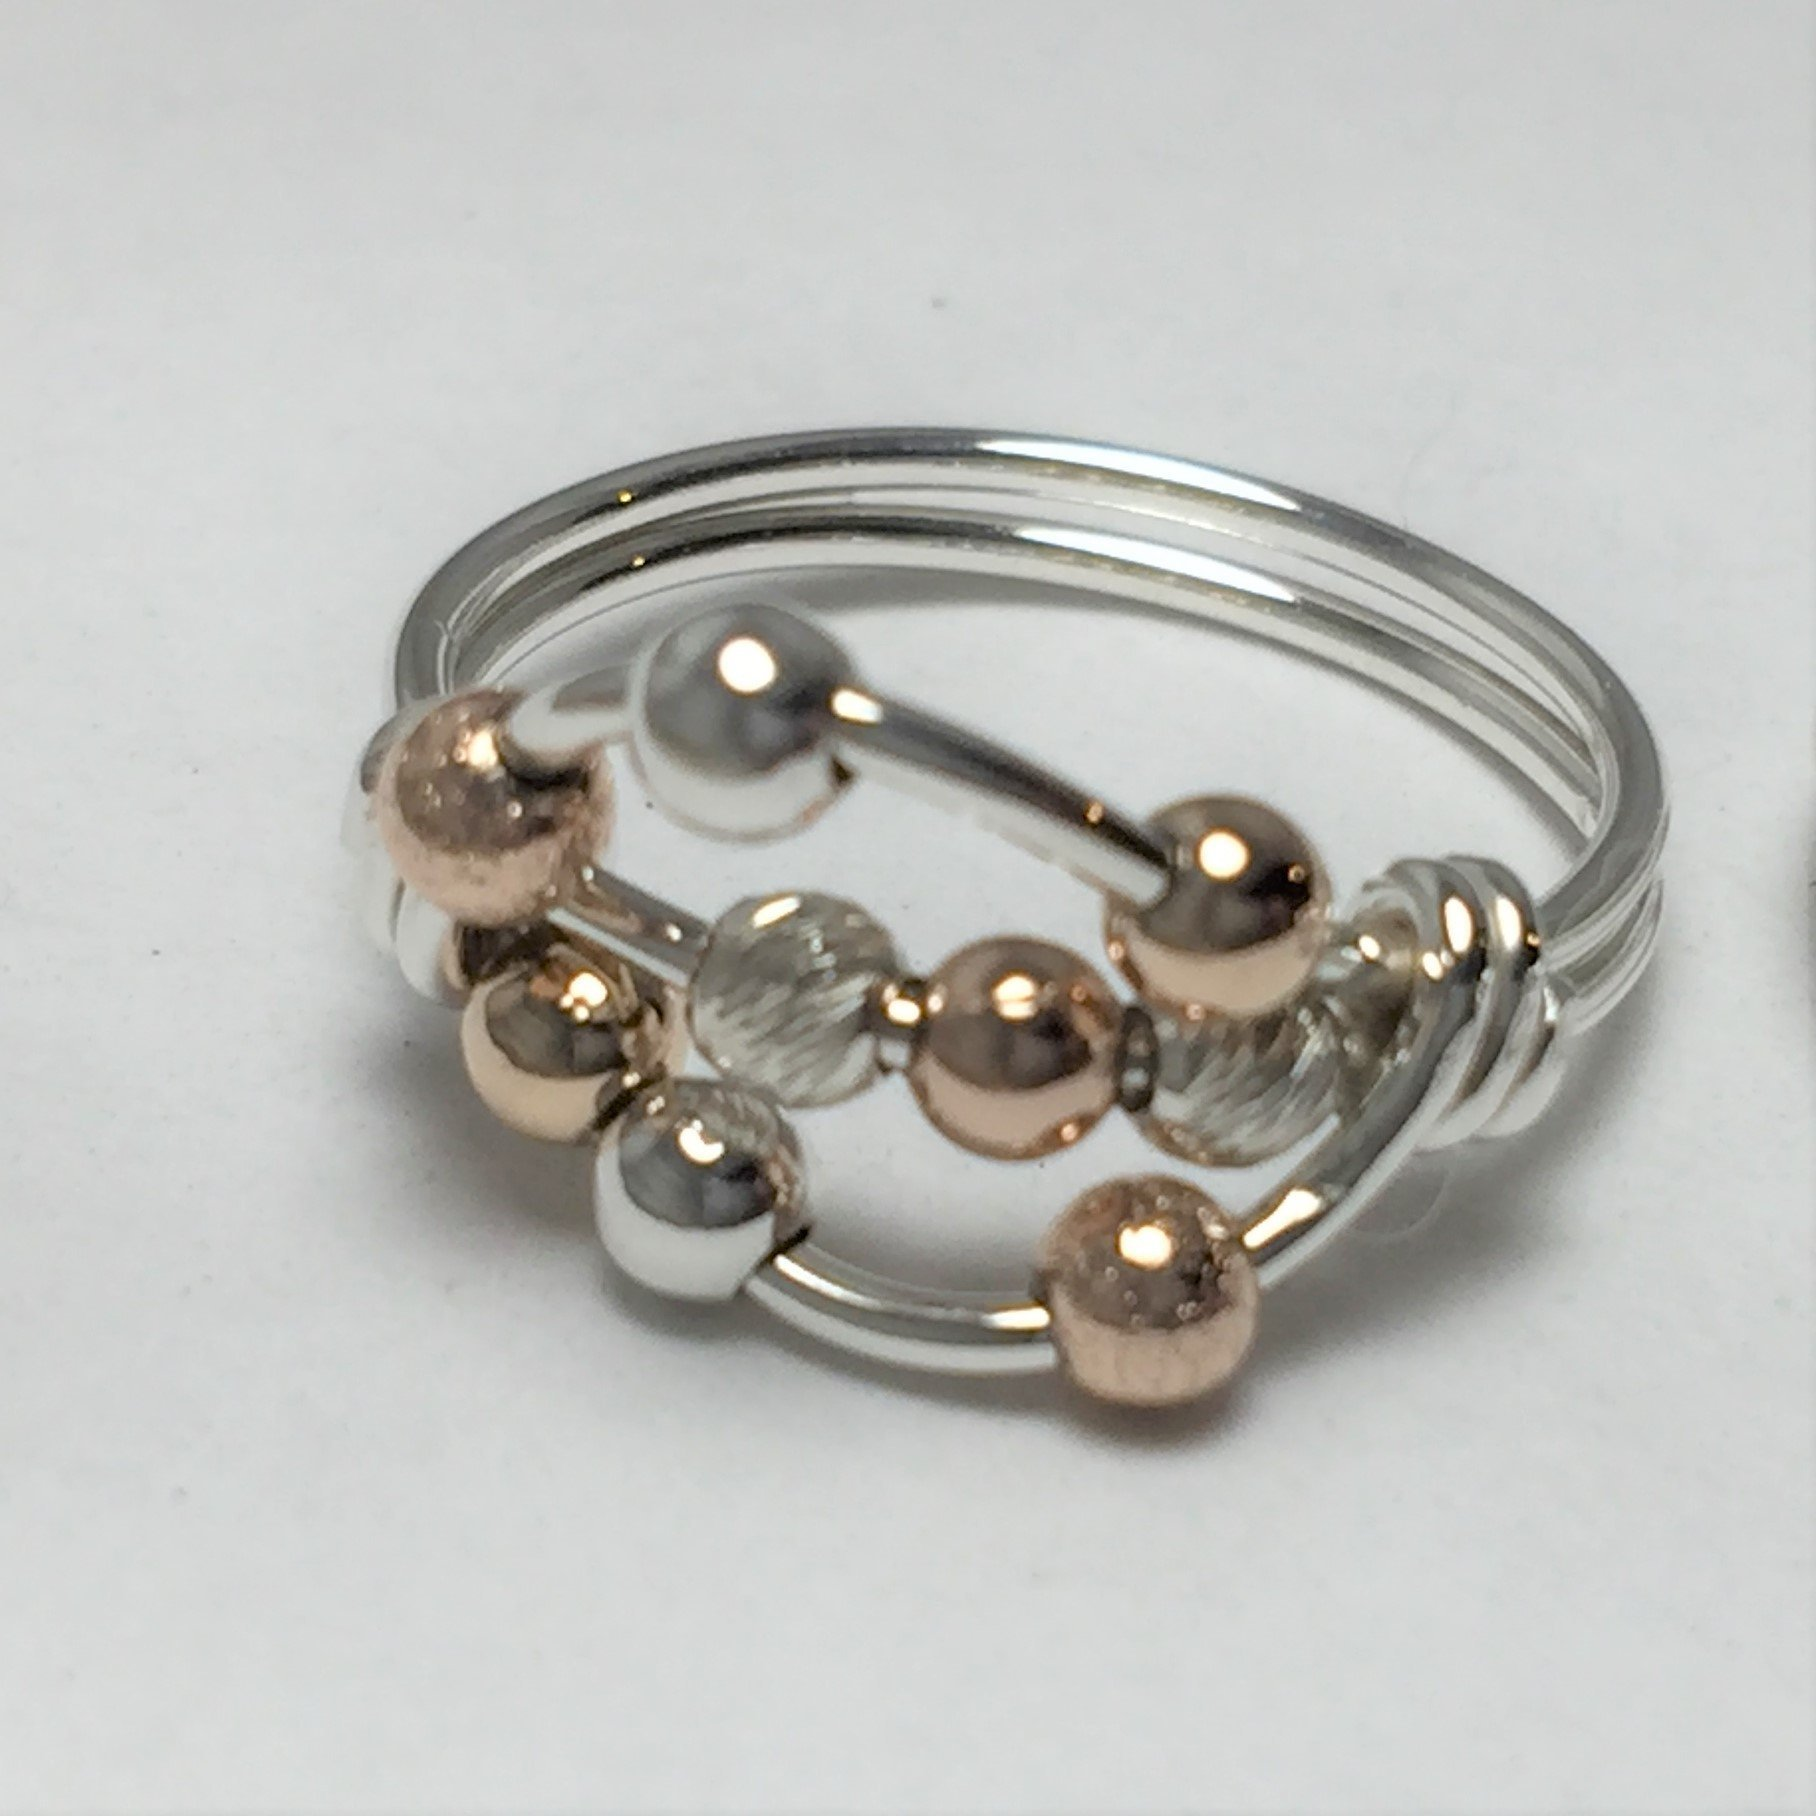 Worry ring, anxiety ring, spinner ring, bead ring, argentium silver, 14kt yellow or rose gold fill